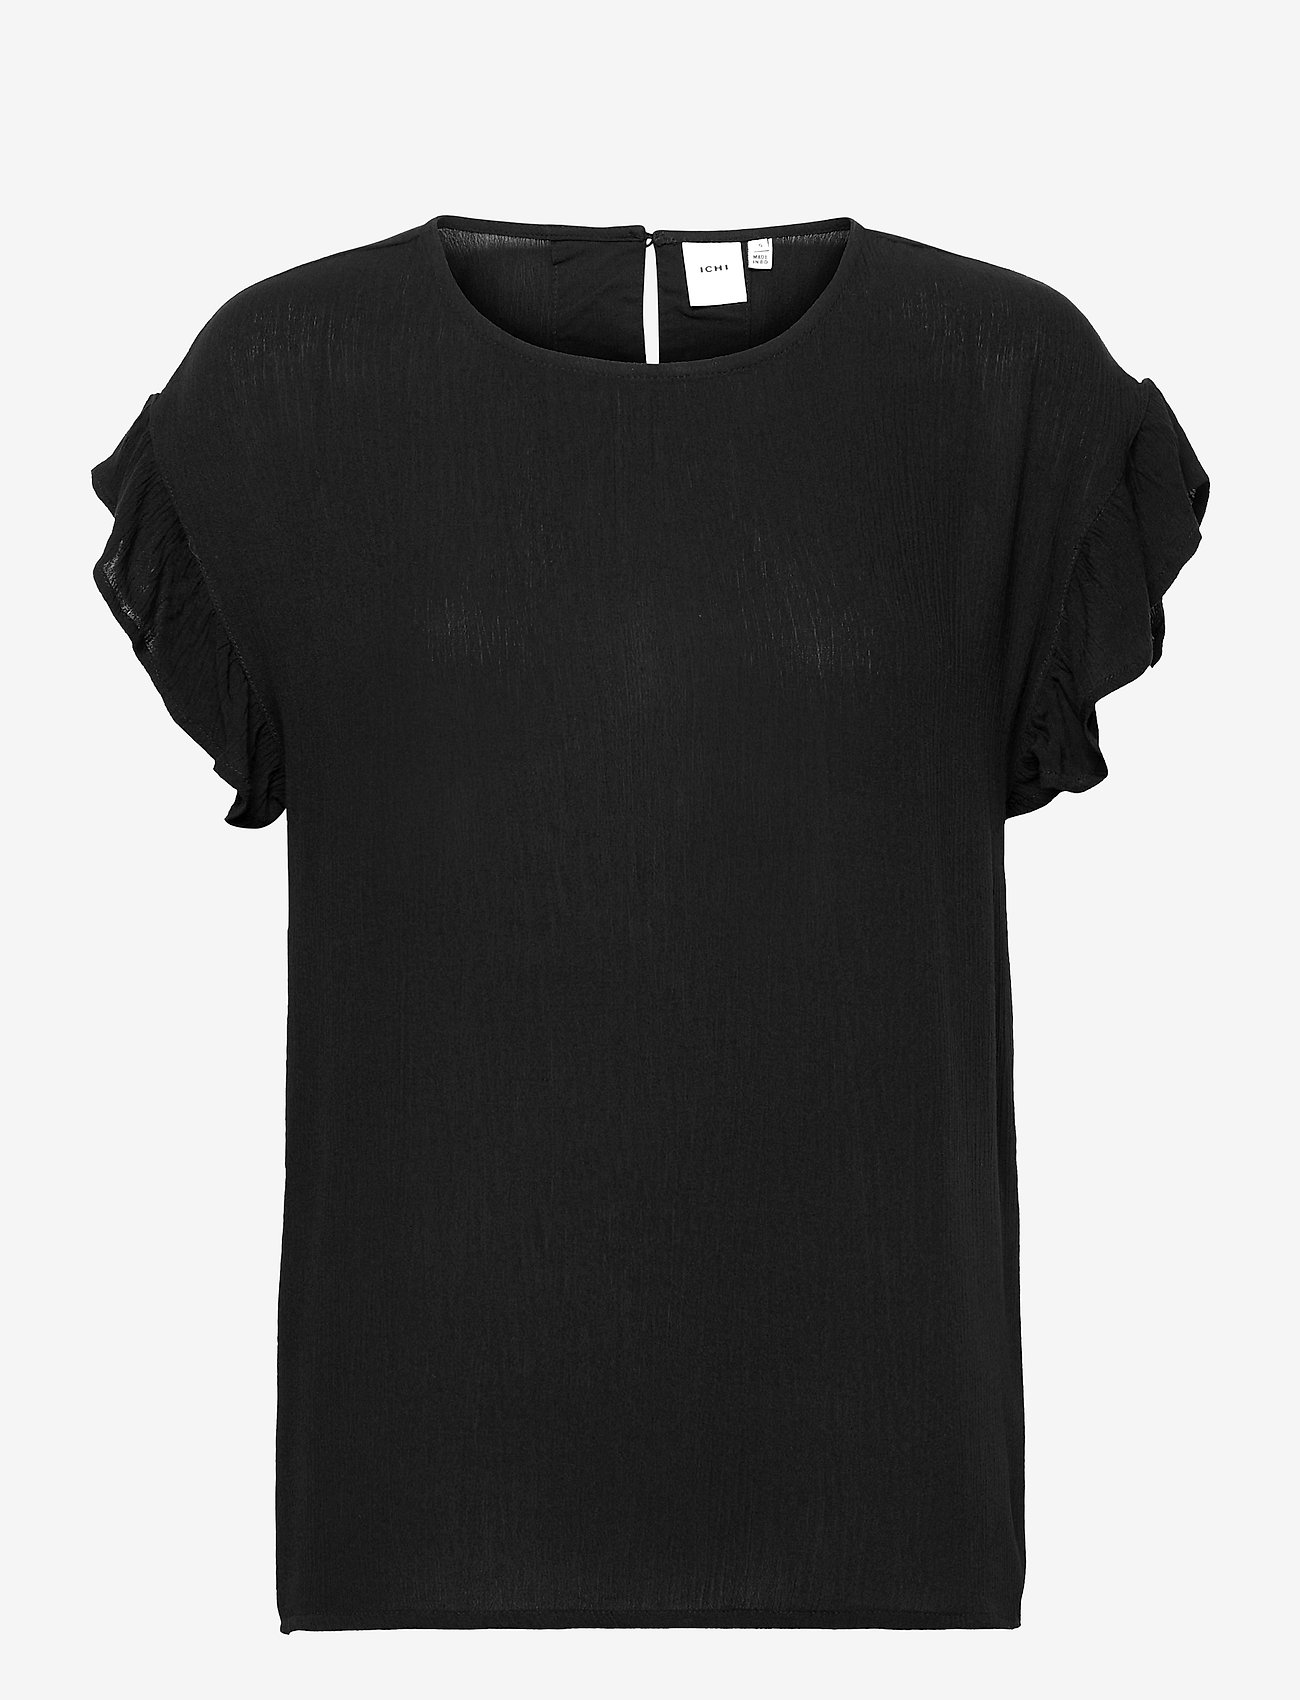 ICHI - IHMARRAKECH SO SS4 - short-sleeved blouses - black - 0